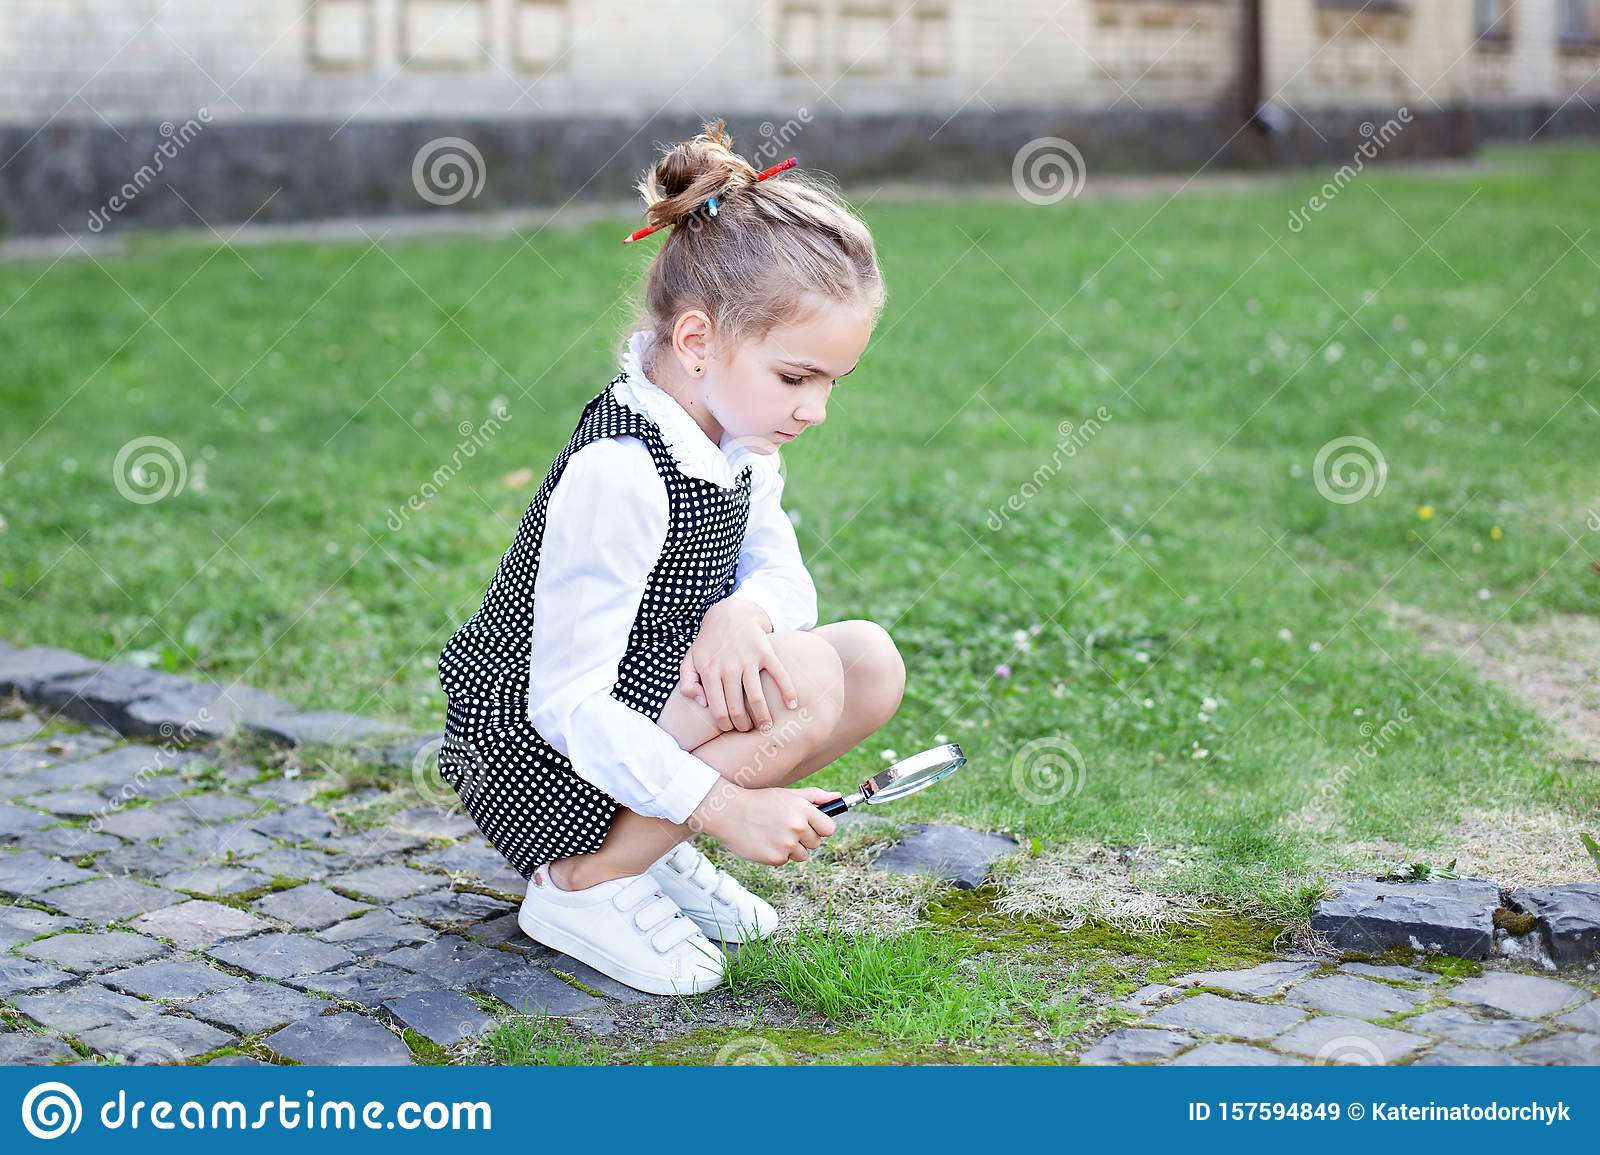 Girl exploring nature in a meadow with a magnifying glass looking at insects. Back to school. Education Concept. Preschool Educati